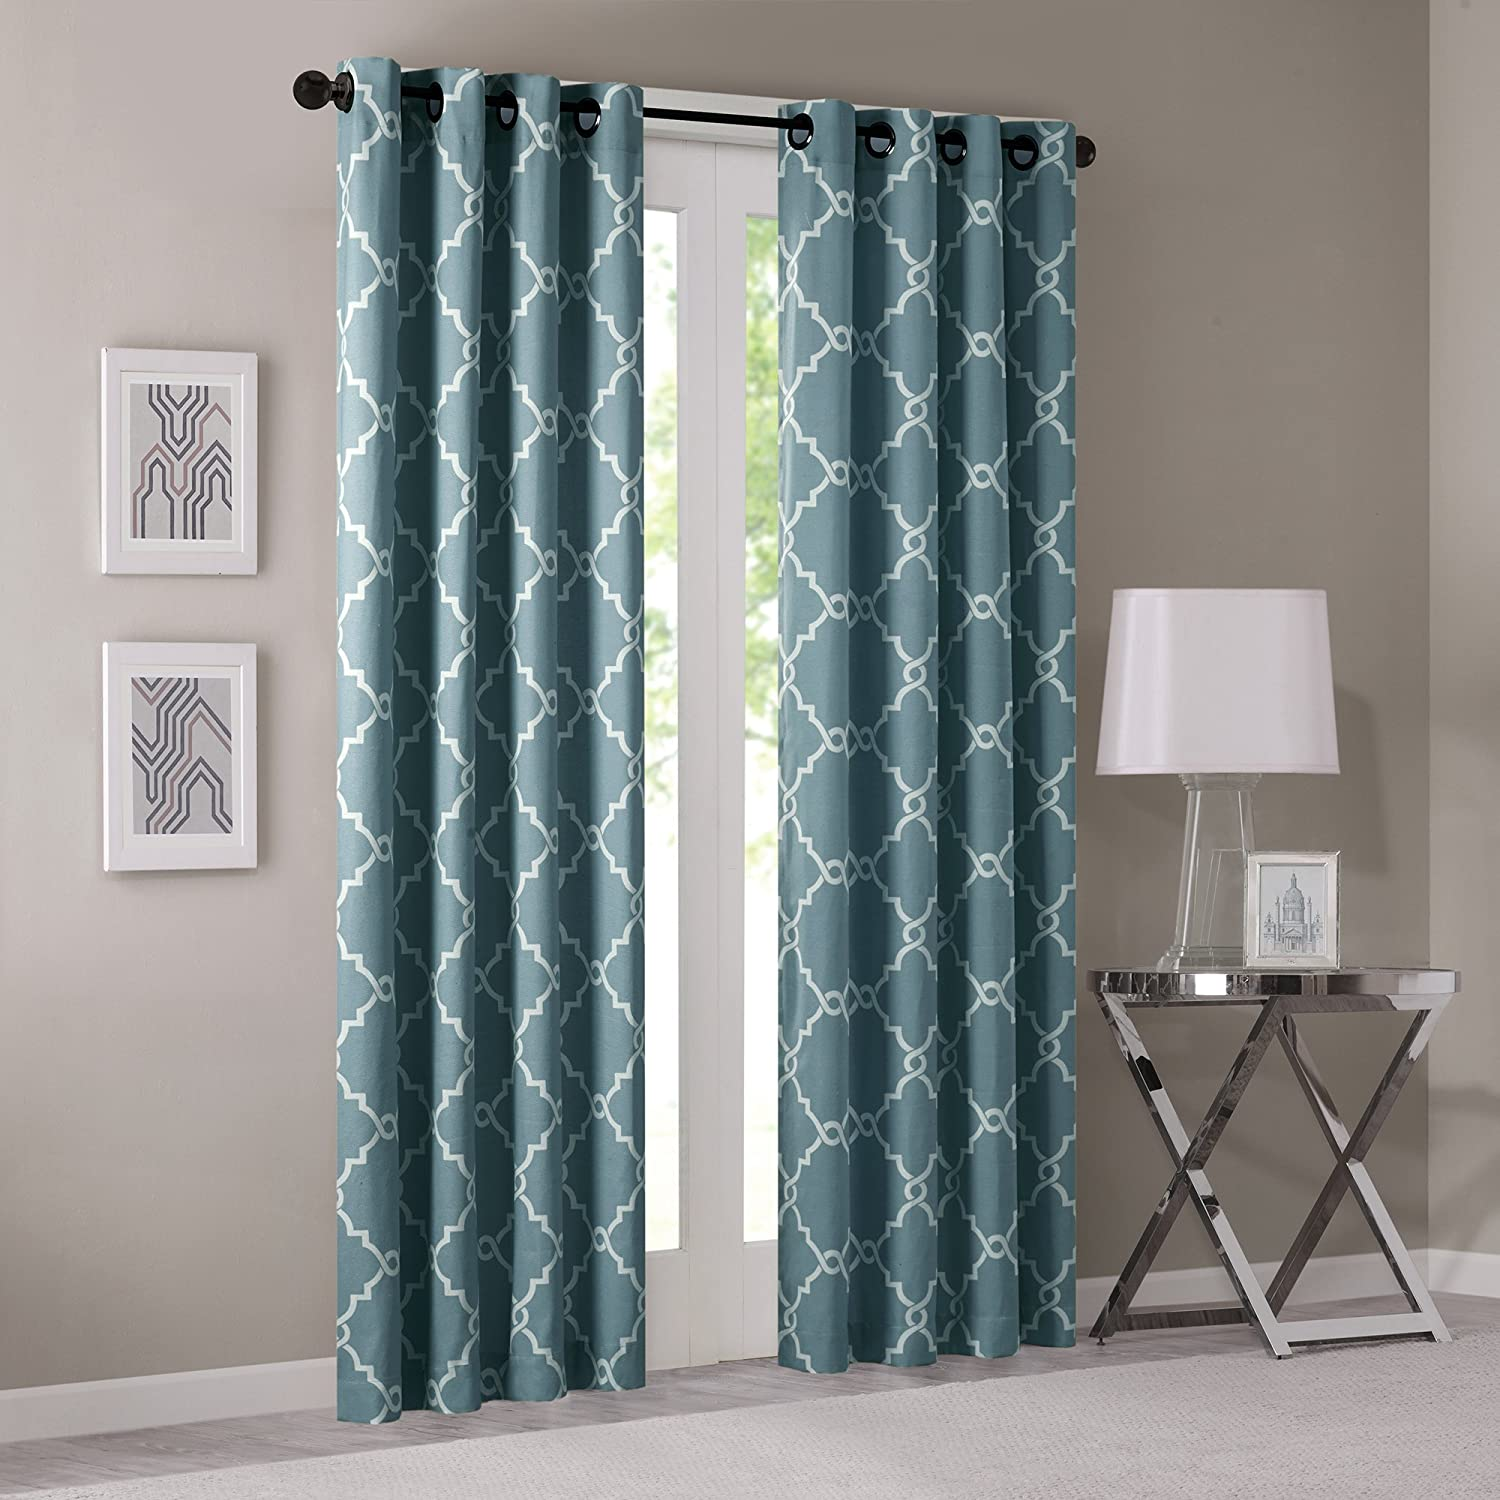 Madison Park Saratoga Fretwork Print Window Curtain, 50x63, Blue 50x63 MP40-1571